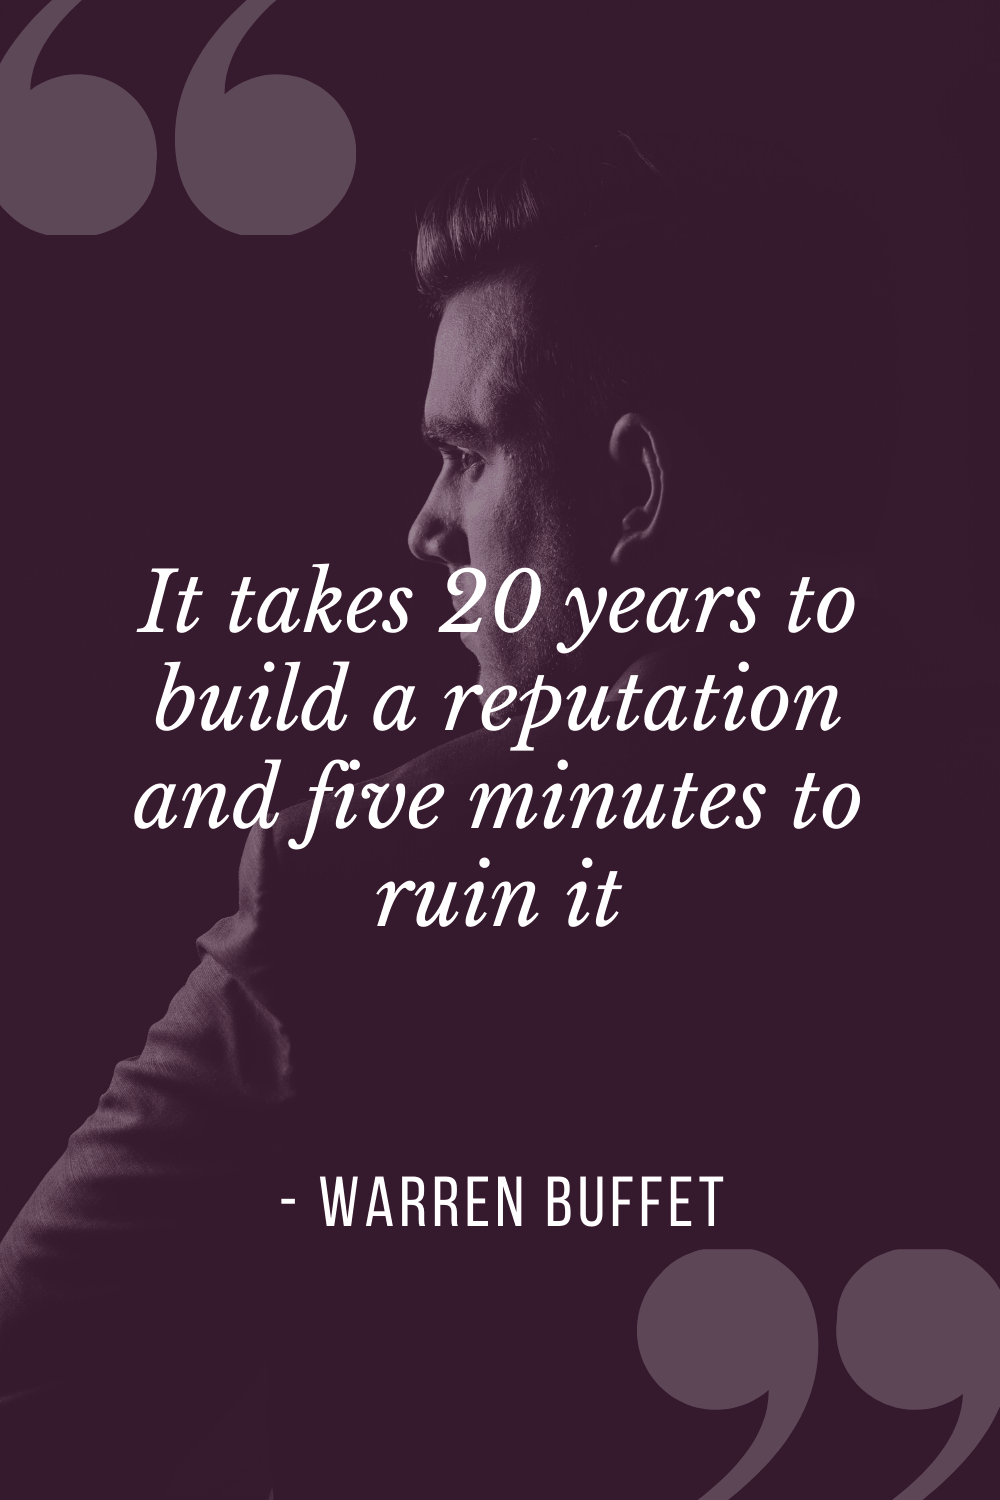 """It takes 20 years to build a reputation and five minutes to ruin it"", Warren Buffet"